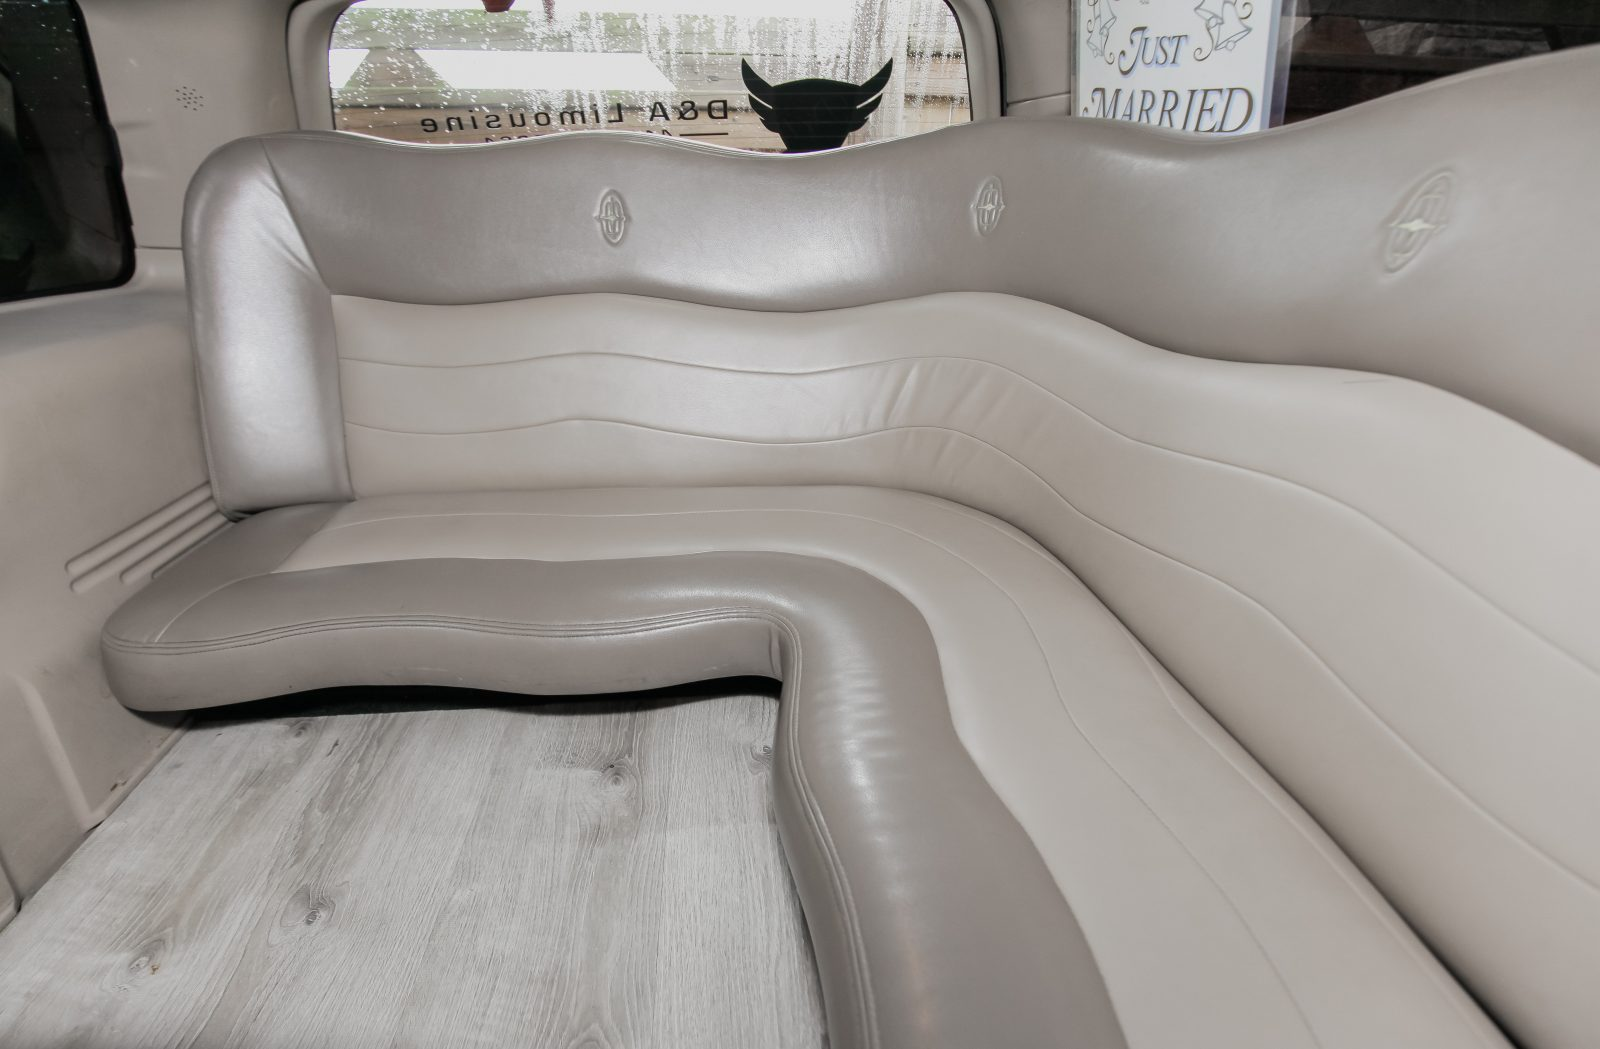 An image showing the inside of the Ford Excursion Stretch Limo